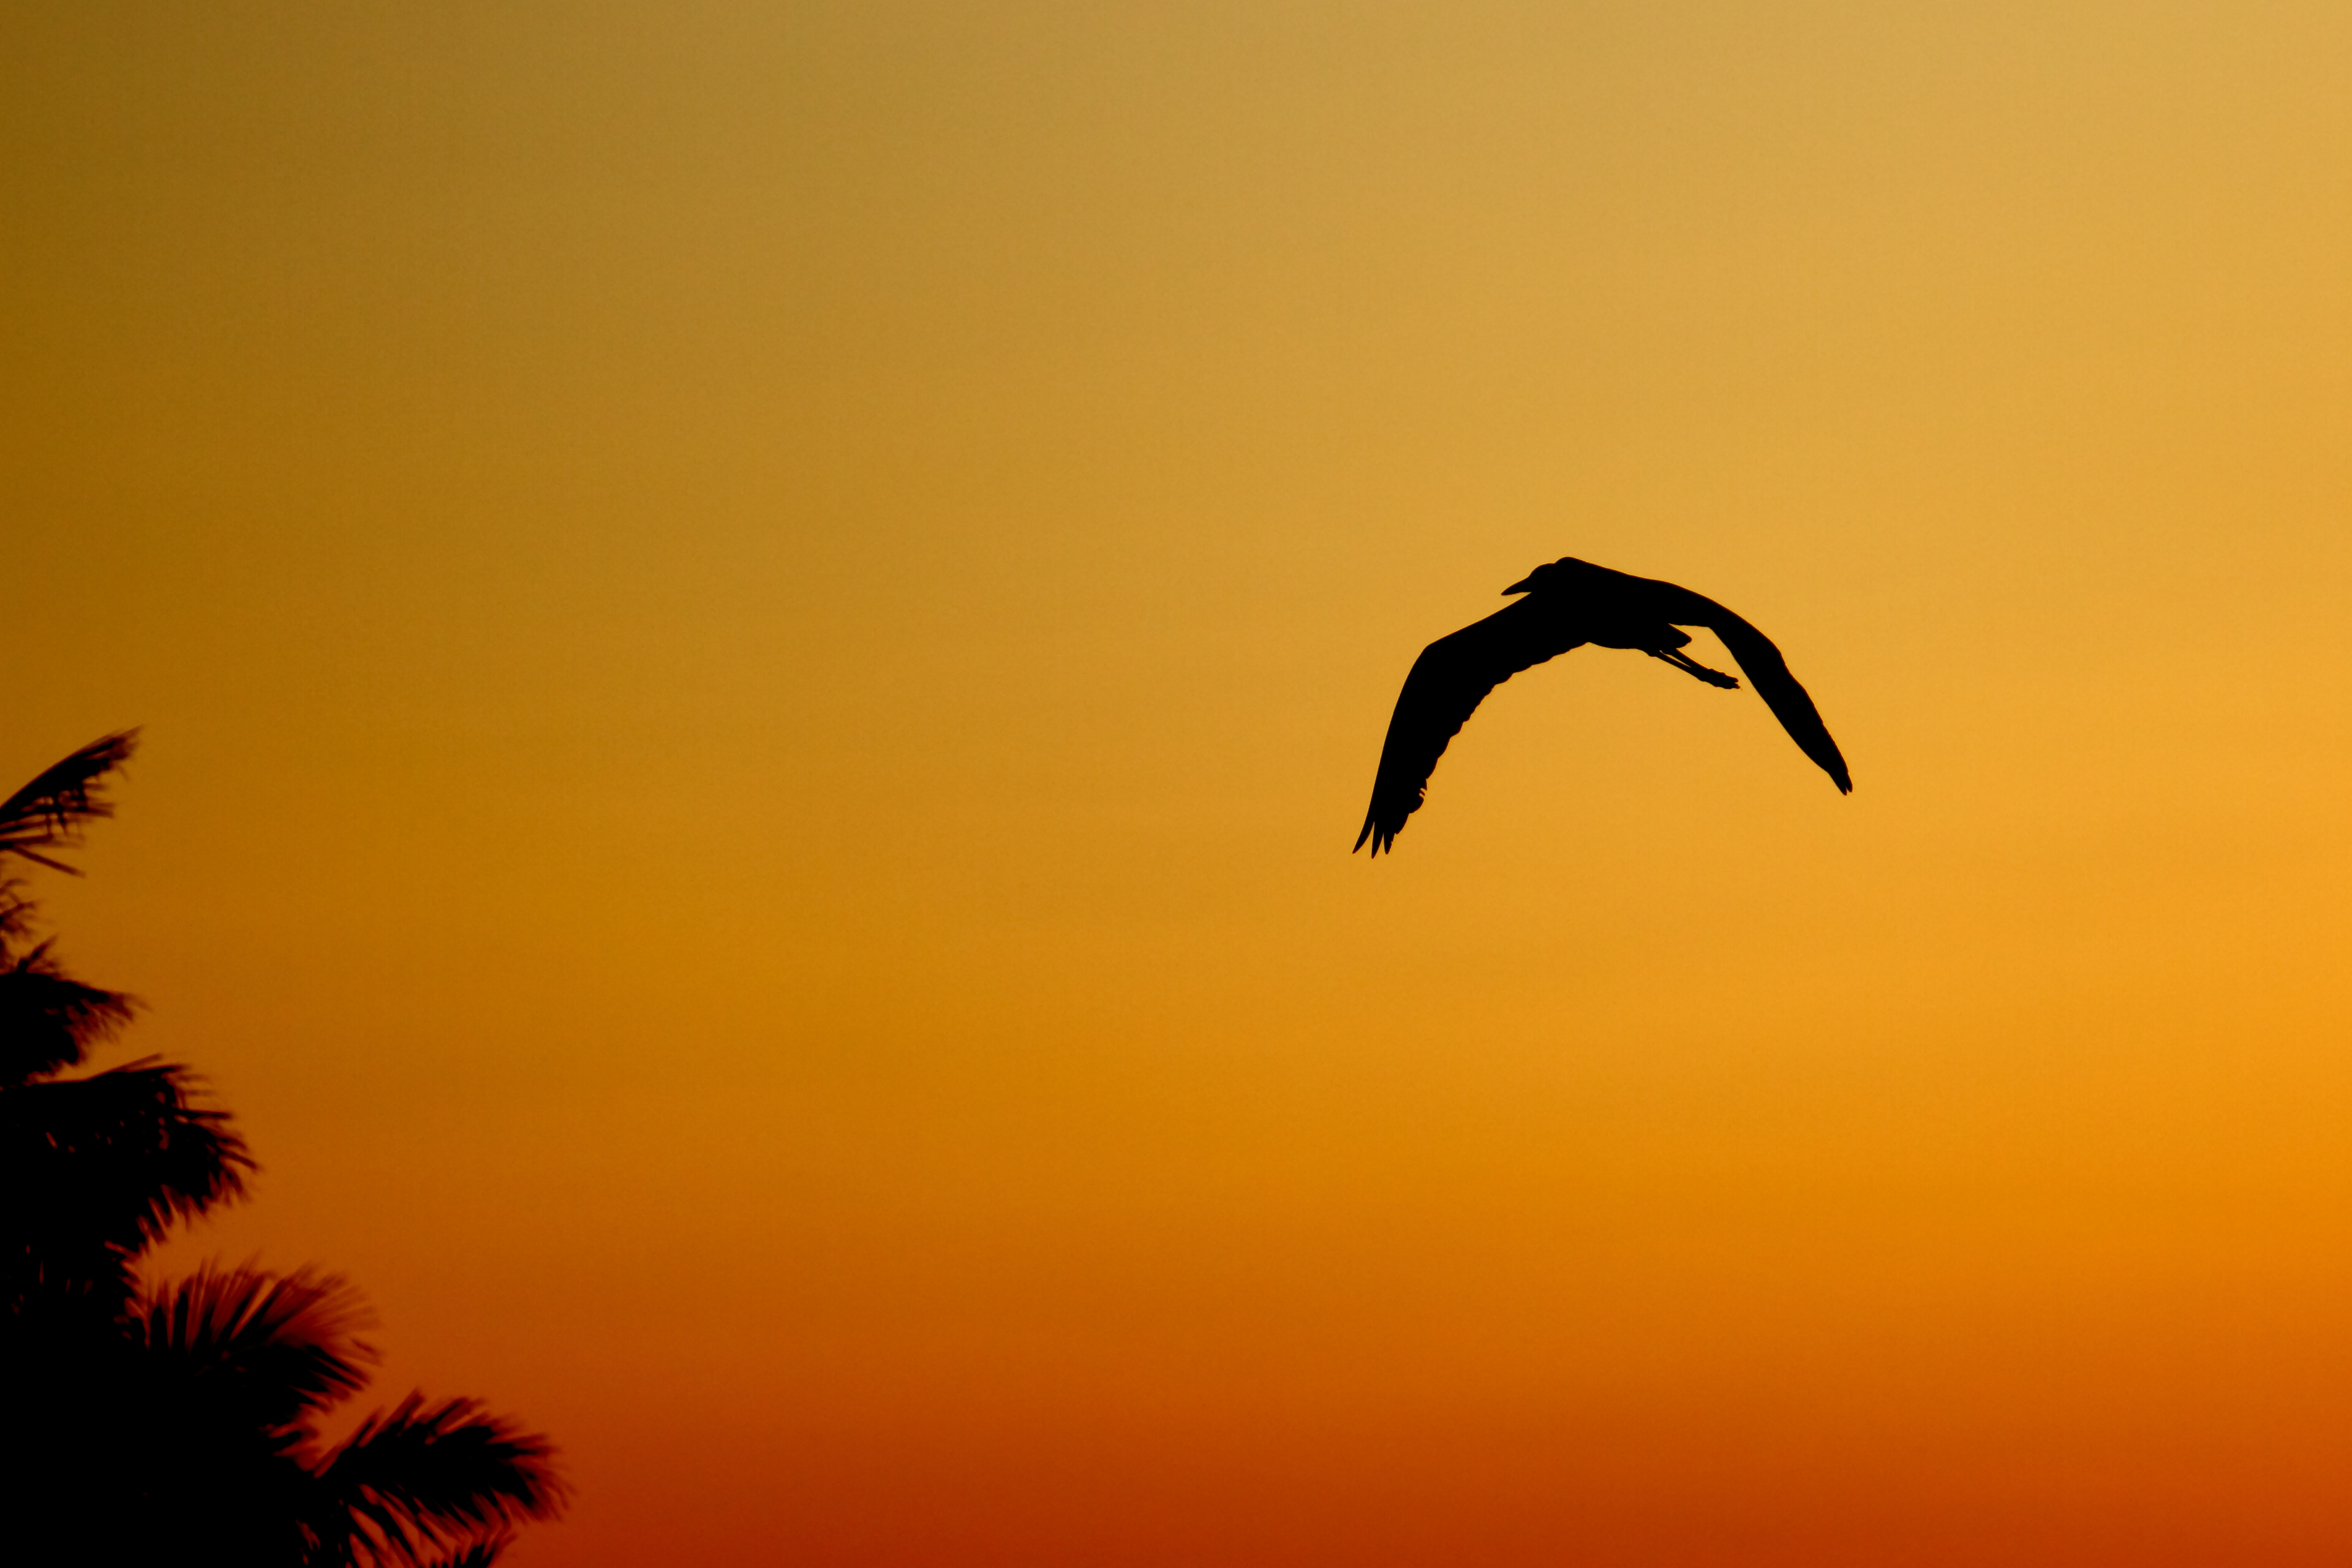 Sunset Flight (4446056174)